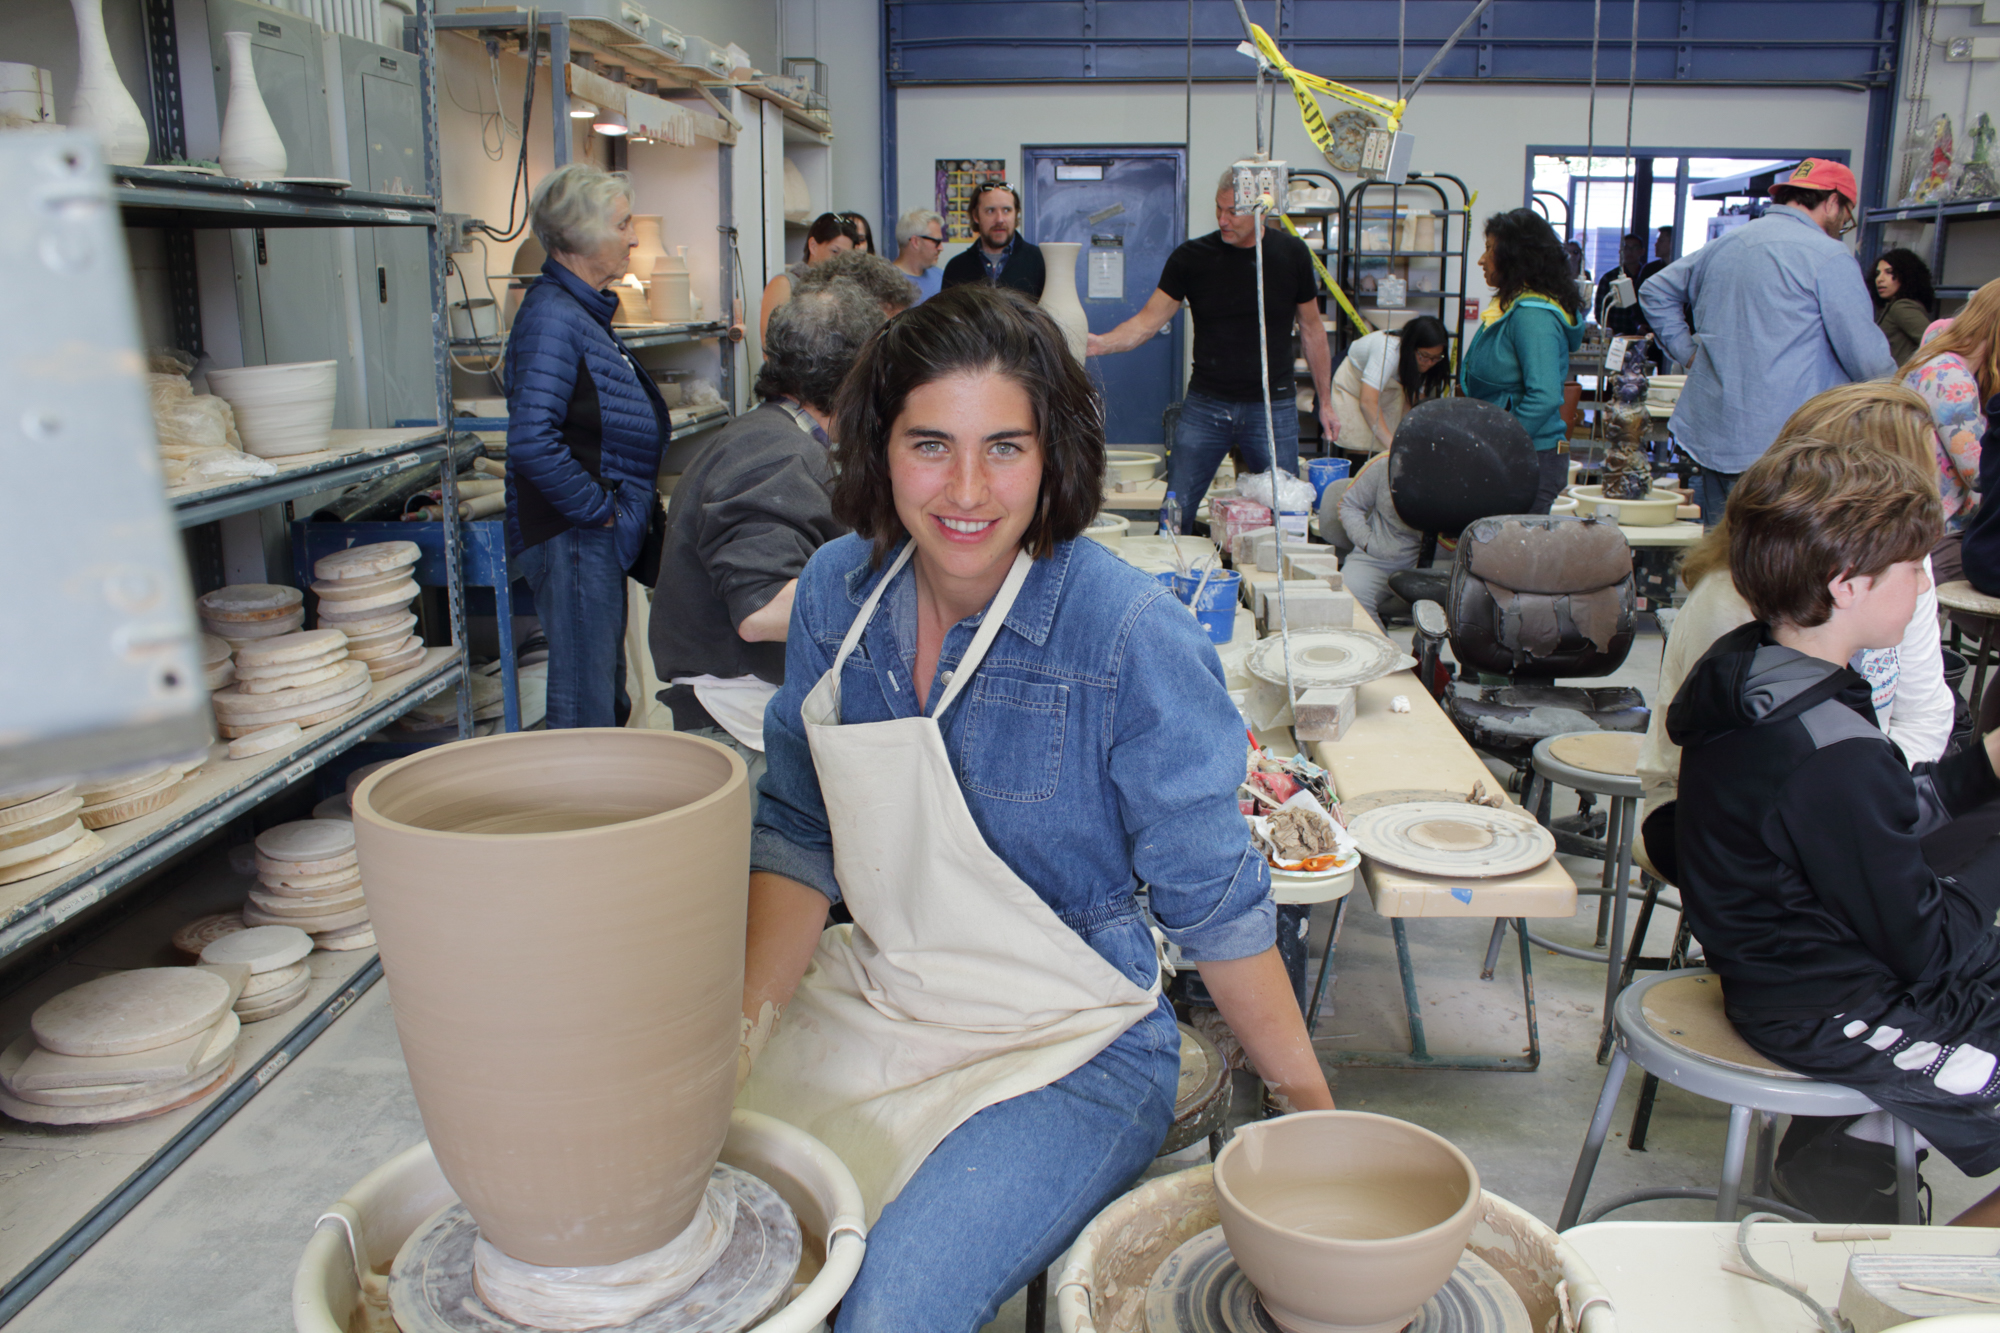 Nerea Nicholson, an Early Childhood Development major at SMC with a love for ceramics, poses while working on two pieces in the SMC Ceramic Arts Gallery at the 12 Annual Santa Monica ArtWalk on March 24th, 2018 in Santa Monica, California. (Heather Creamer/ Corsair Photo).